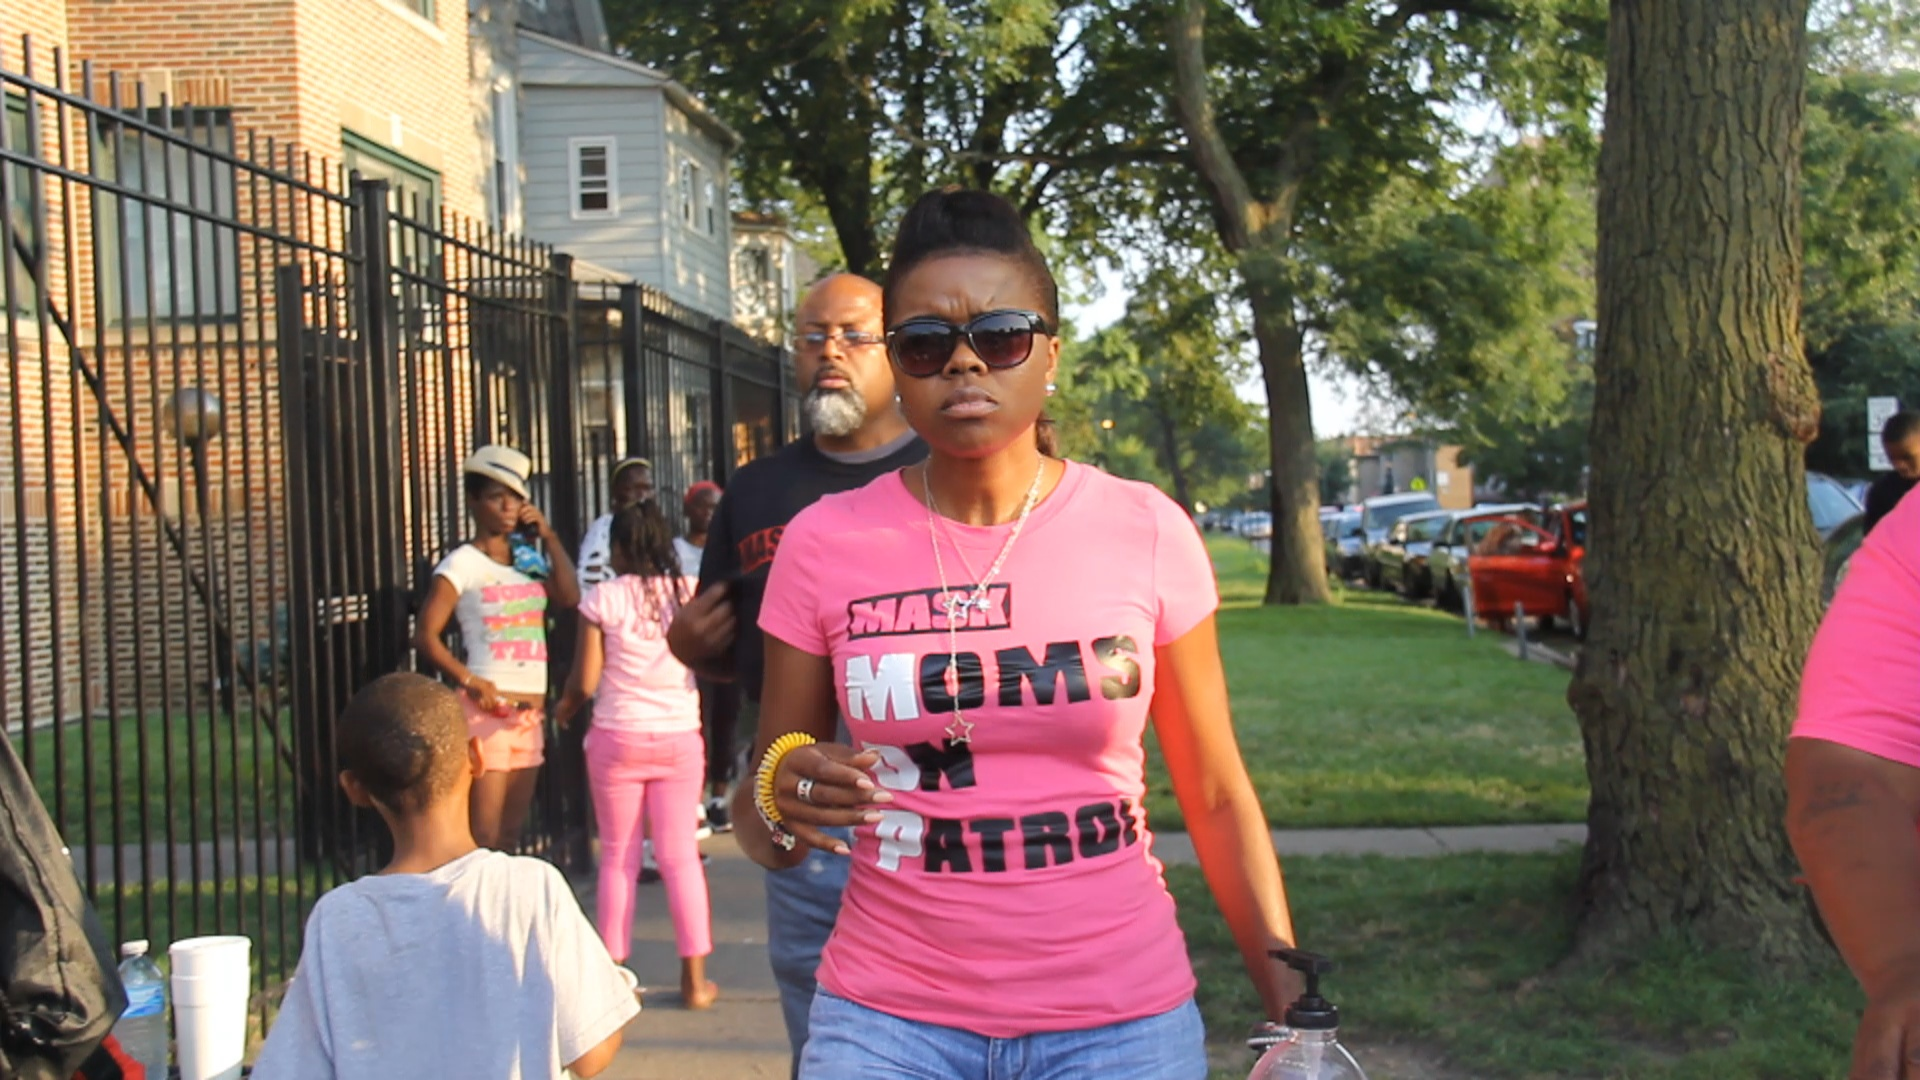 Tamar Manasseh walks down the street during a recent gathering. She started Mothers Against Senseless Killings last year to patrol the block of 75th and Stewart. (Andrew Gill/WBEZ)